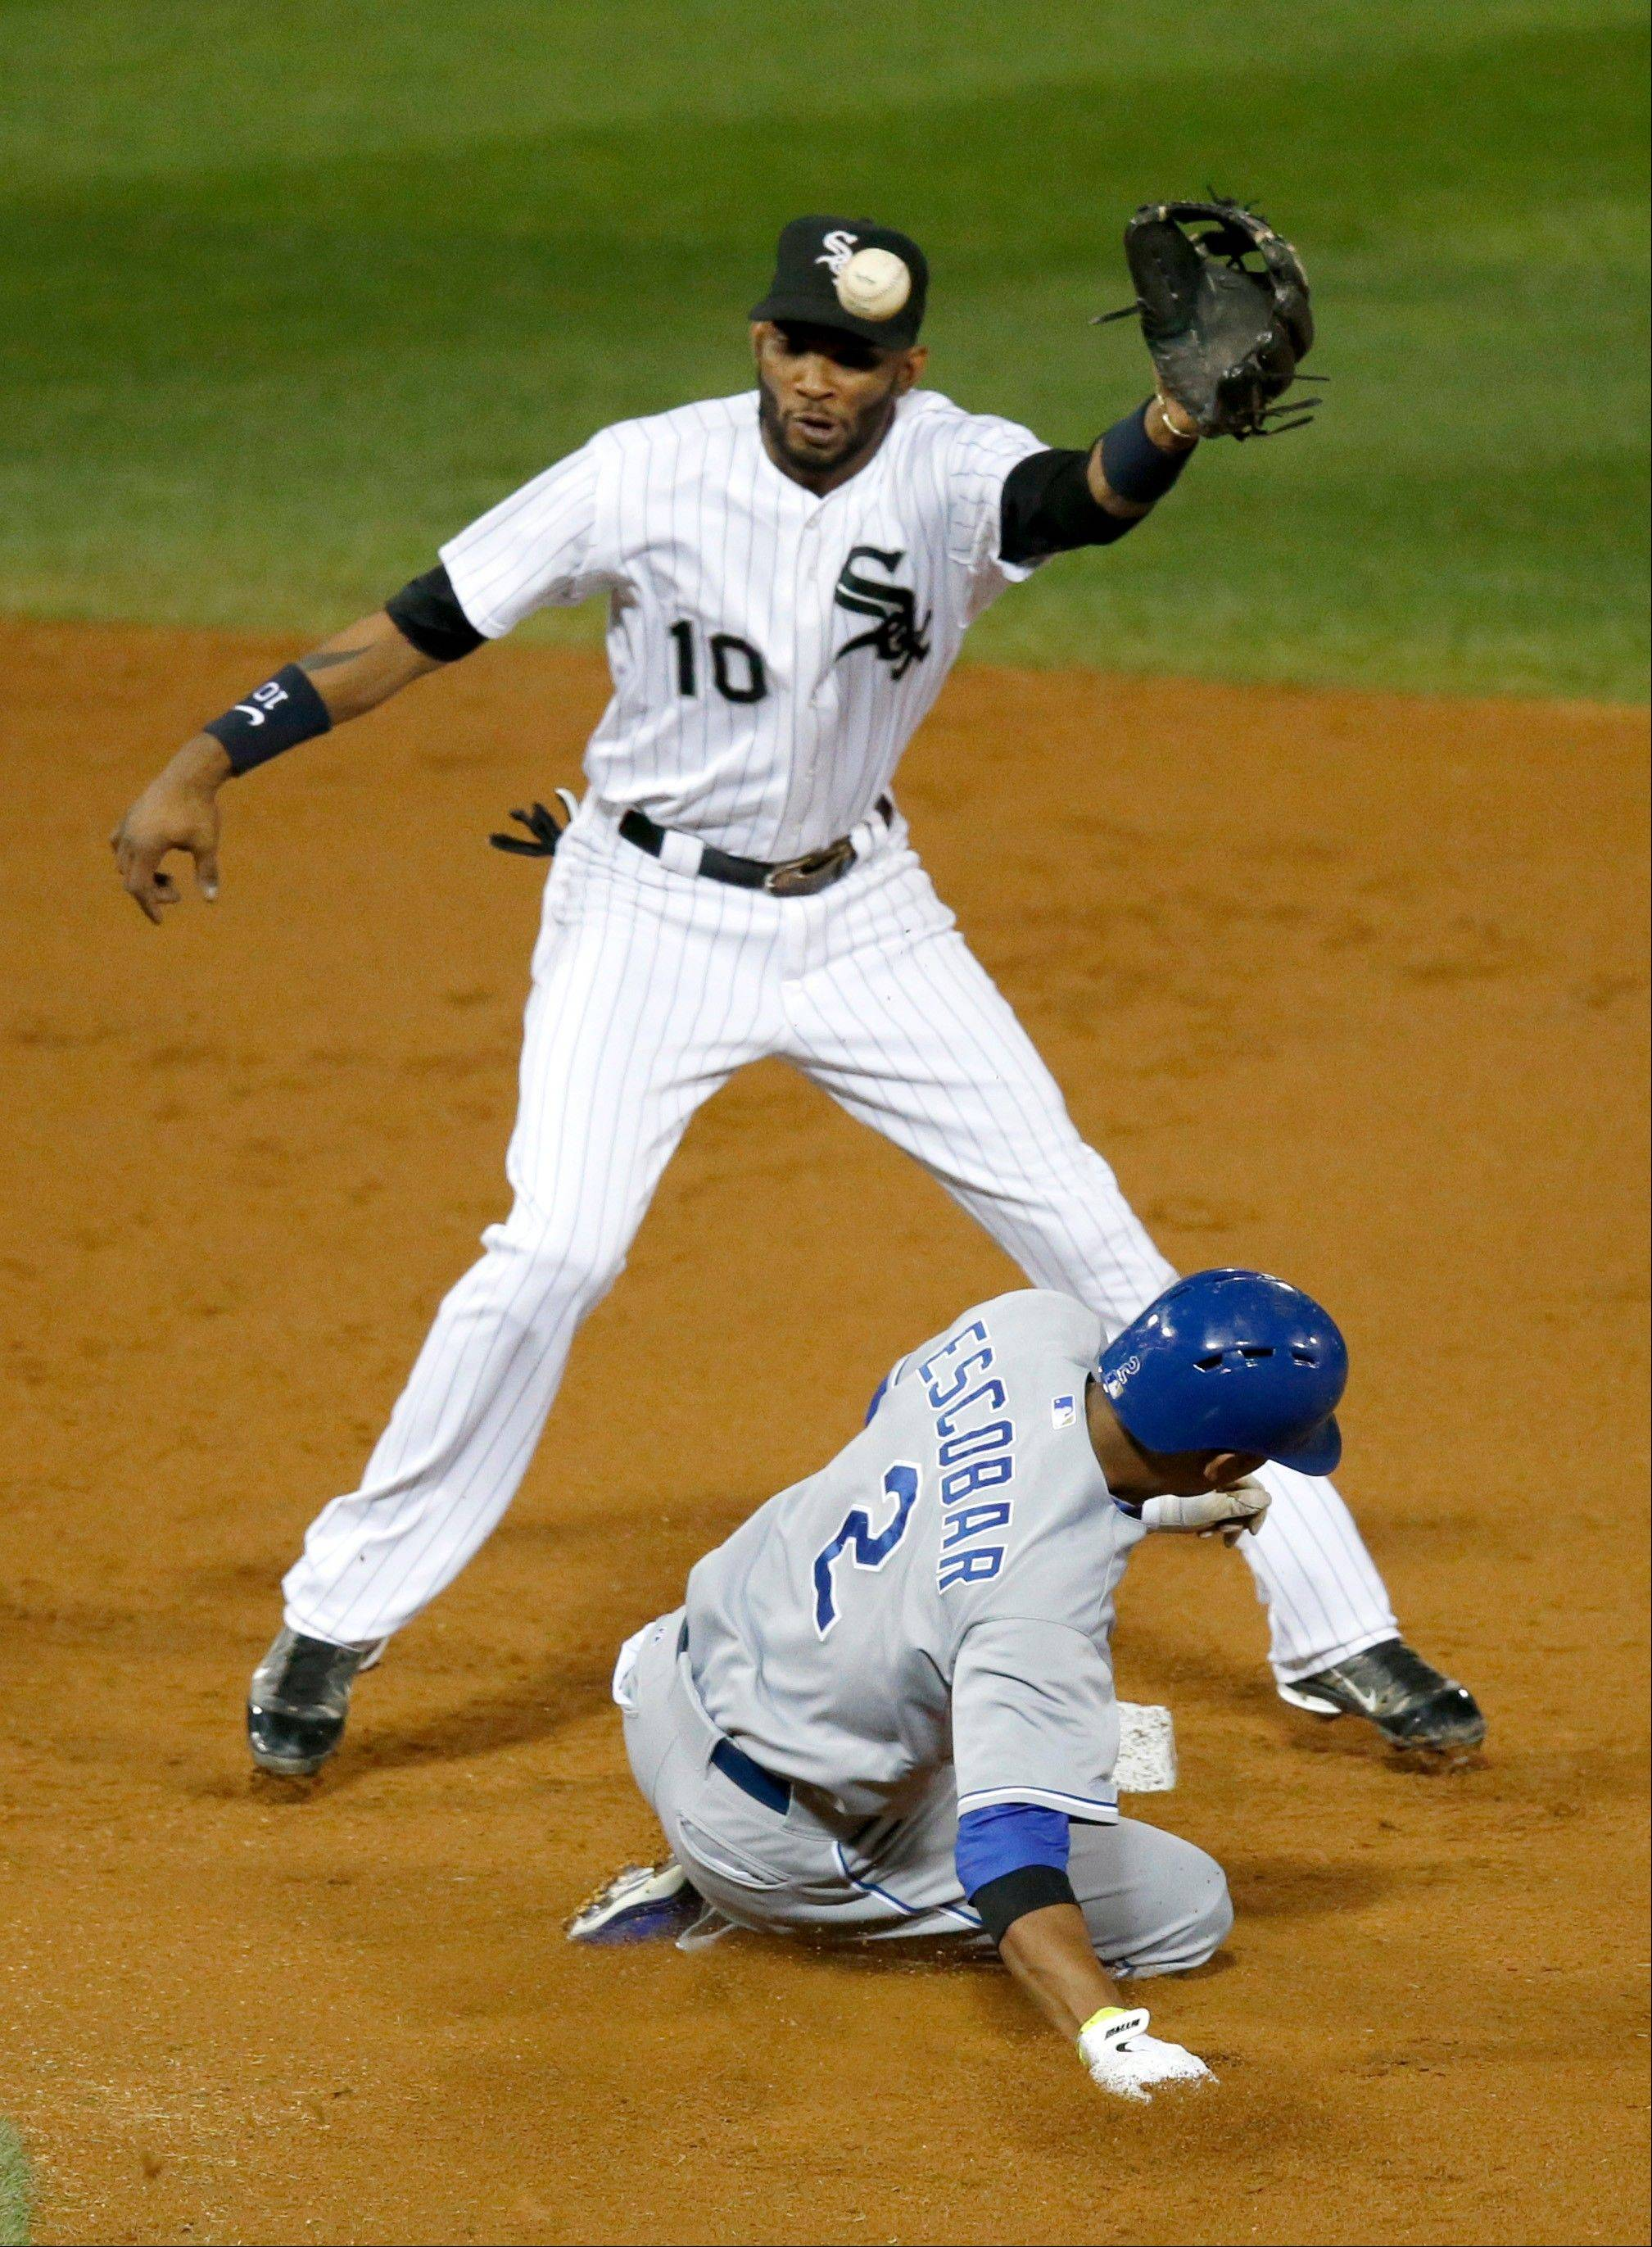 Kansas City Royals' Alcides Escobar (2) steals second on a throw from Chicago White Sox catcher Josh Phegley to shortstop Alexei Ramirez during the second inning of a baseball game Friday, Sept. 27, 2013, in Chicago.